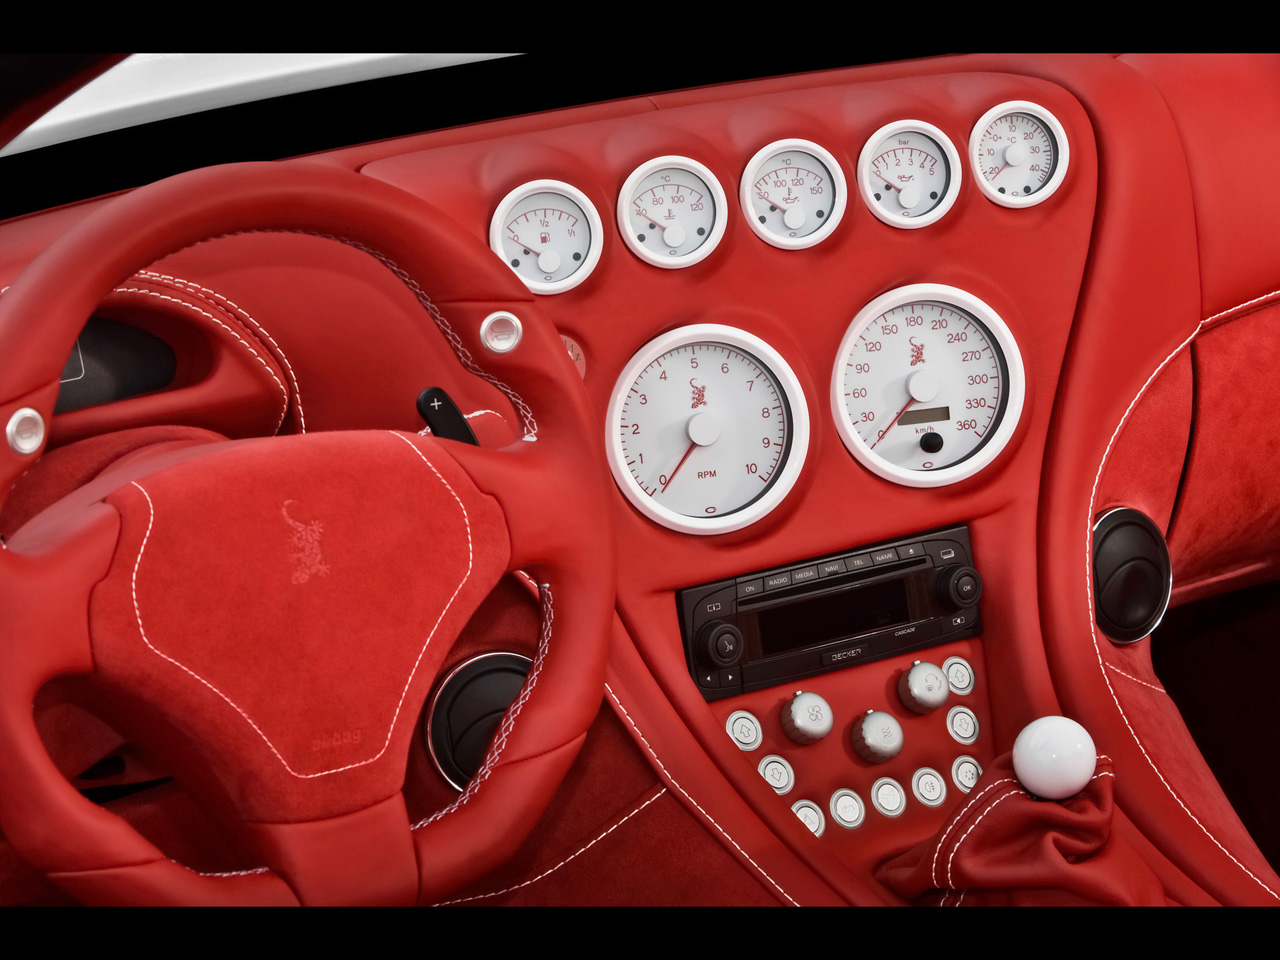 1280x960 - Wiesmann GT MF5 Wallpapers 28